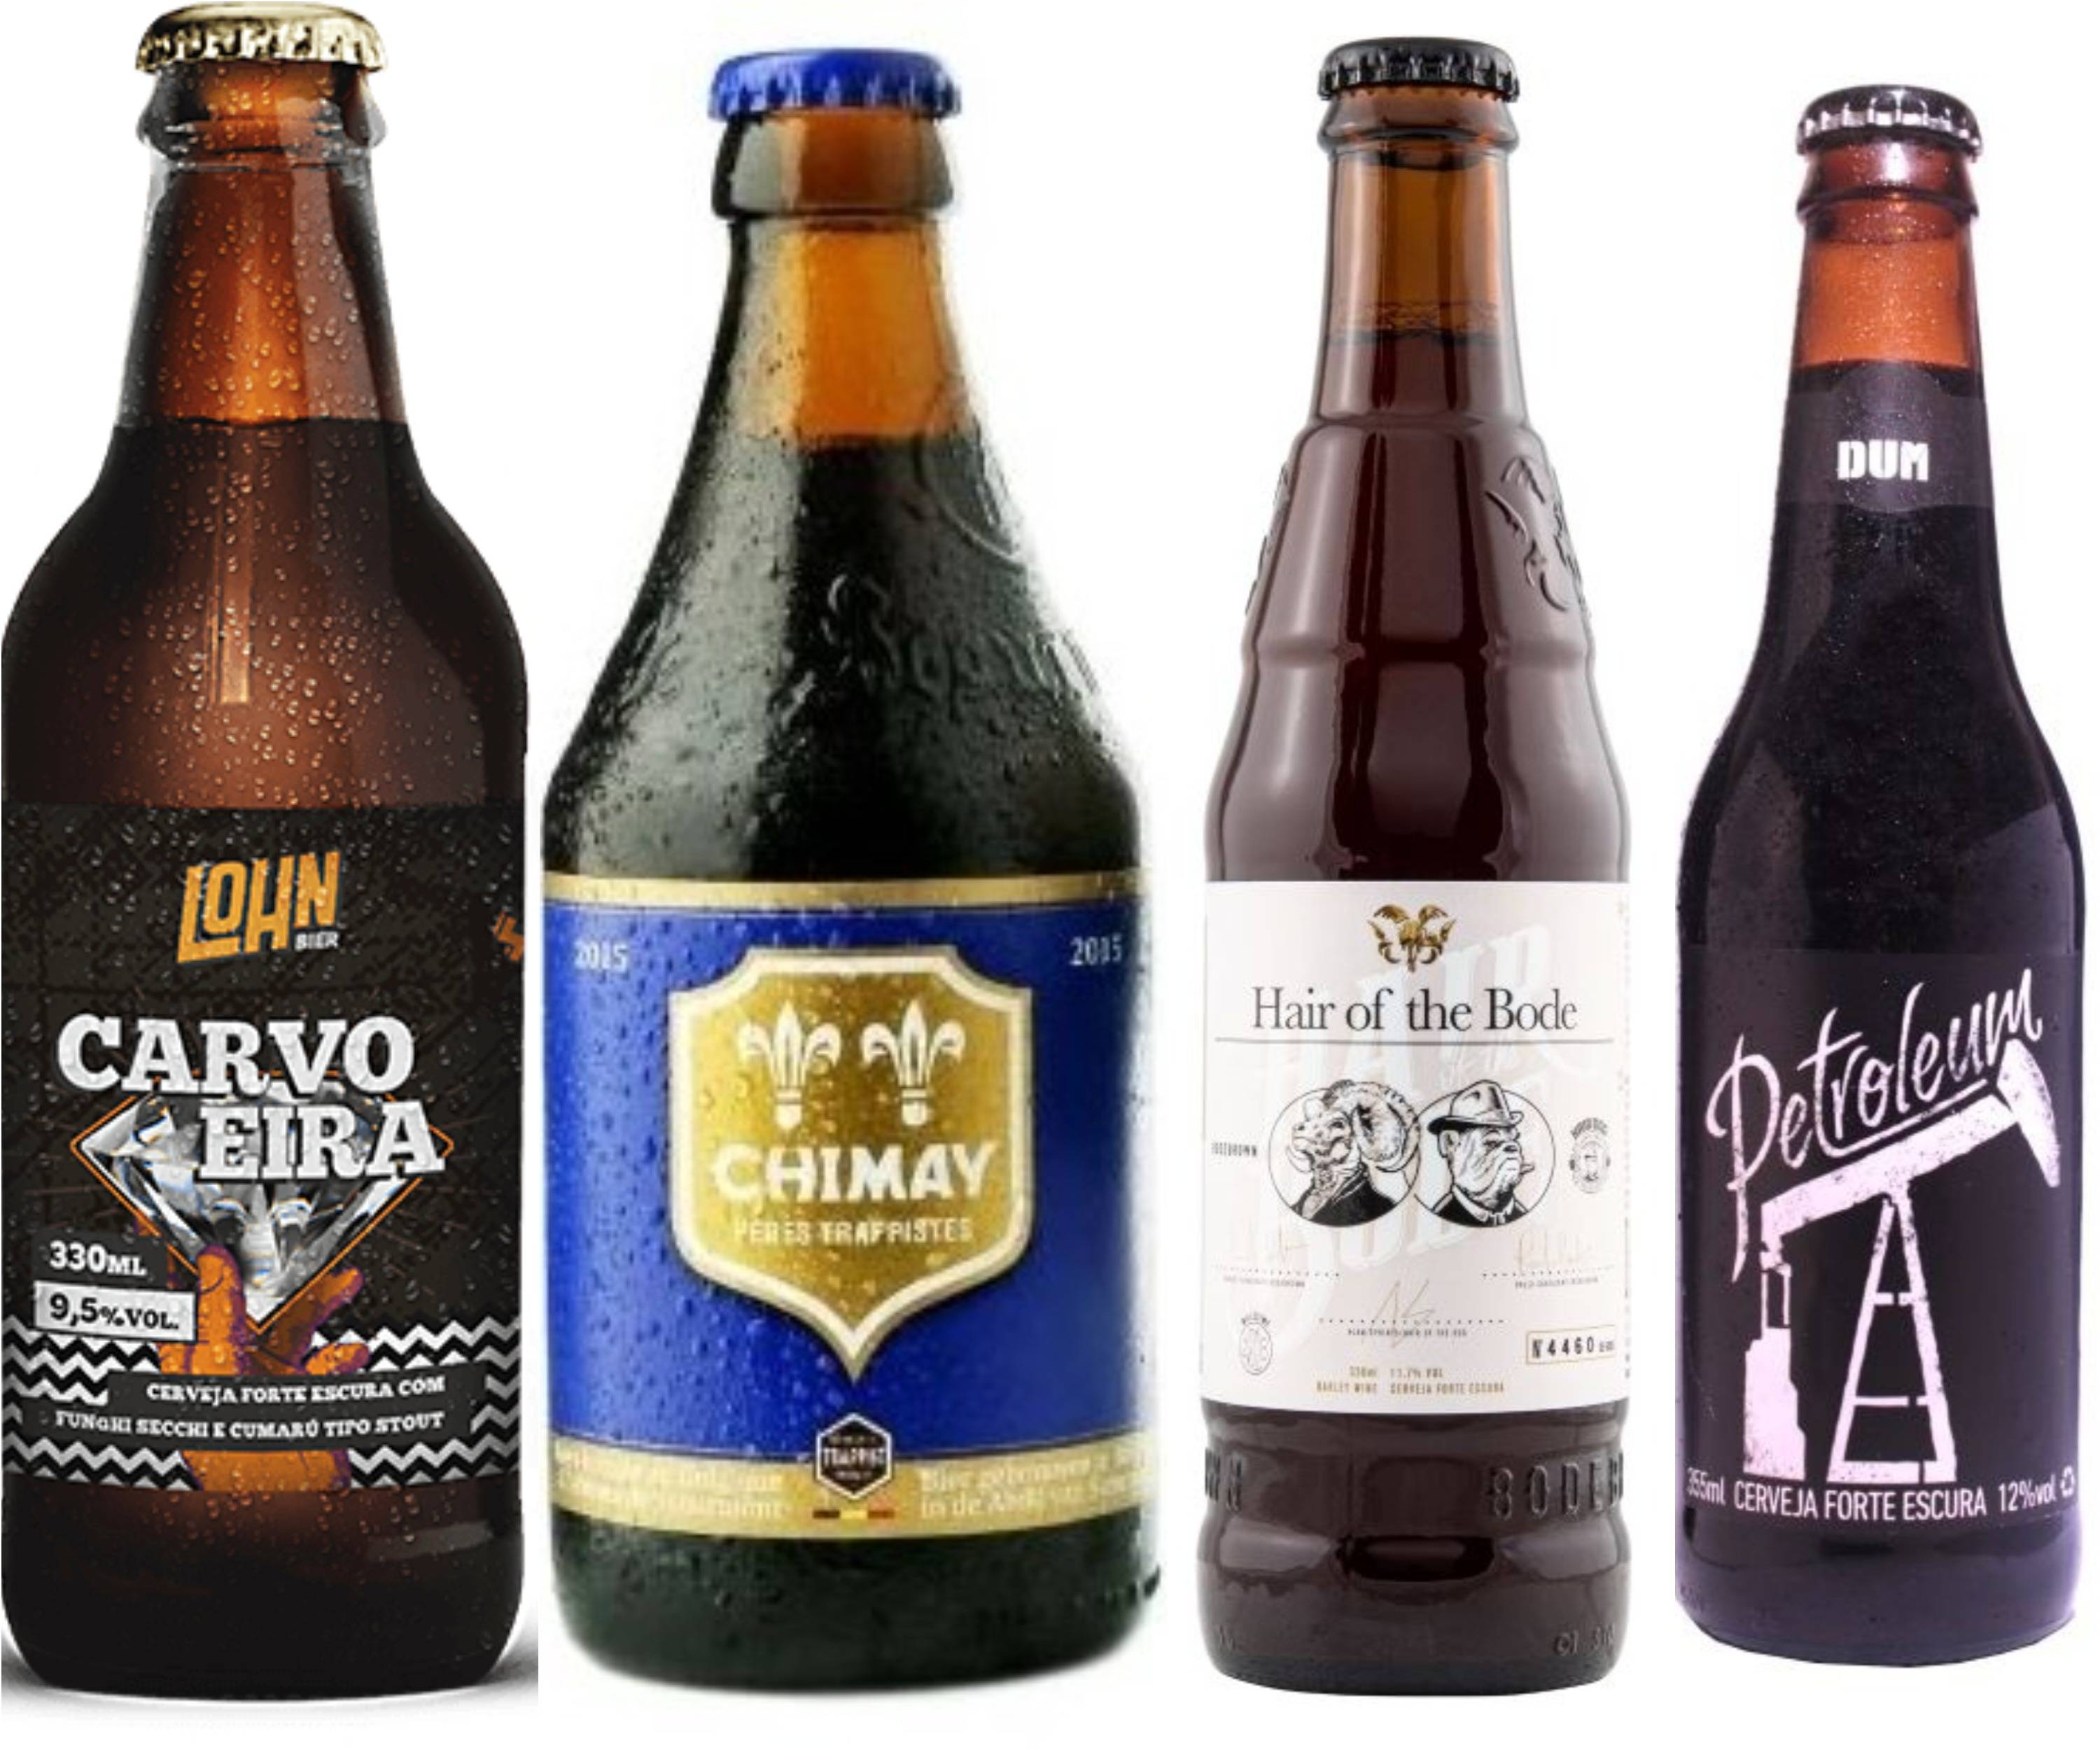 Lohn Carvoeira, Chimay Blue,  Bodebrown Hair Of The Bode e  DUM Petroleum.